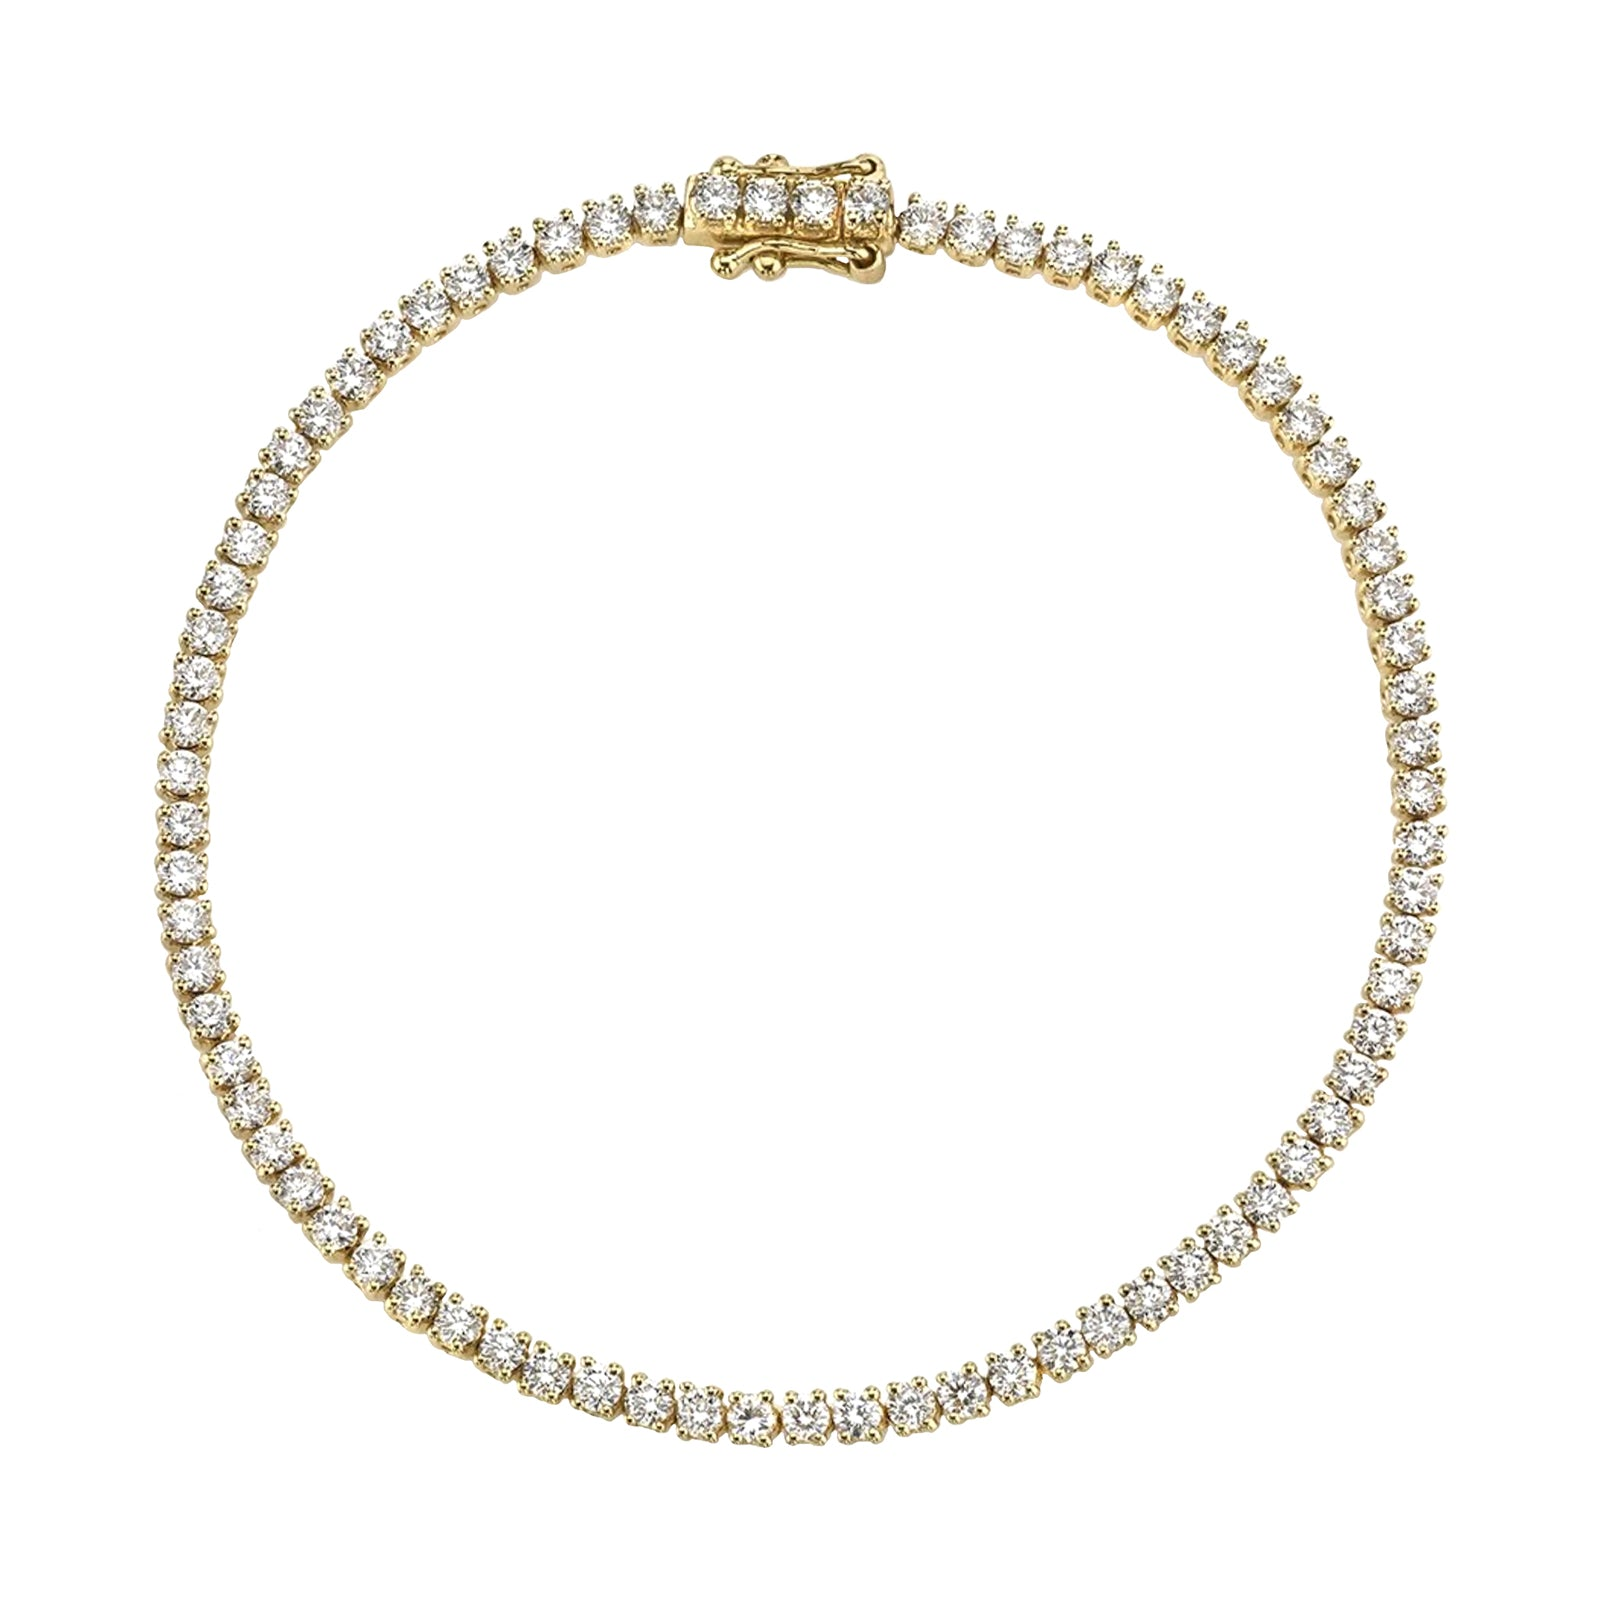 Gold & White Diamond Hepburn Bracelet by Anita Ko for Broken English Jewelry